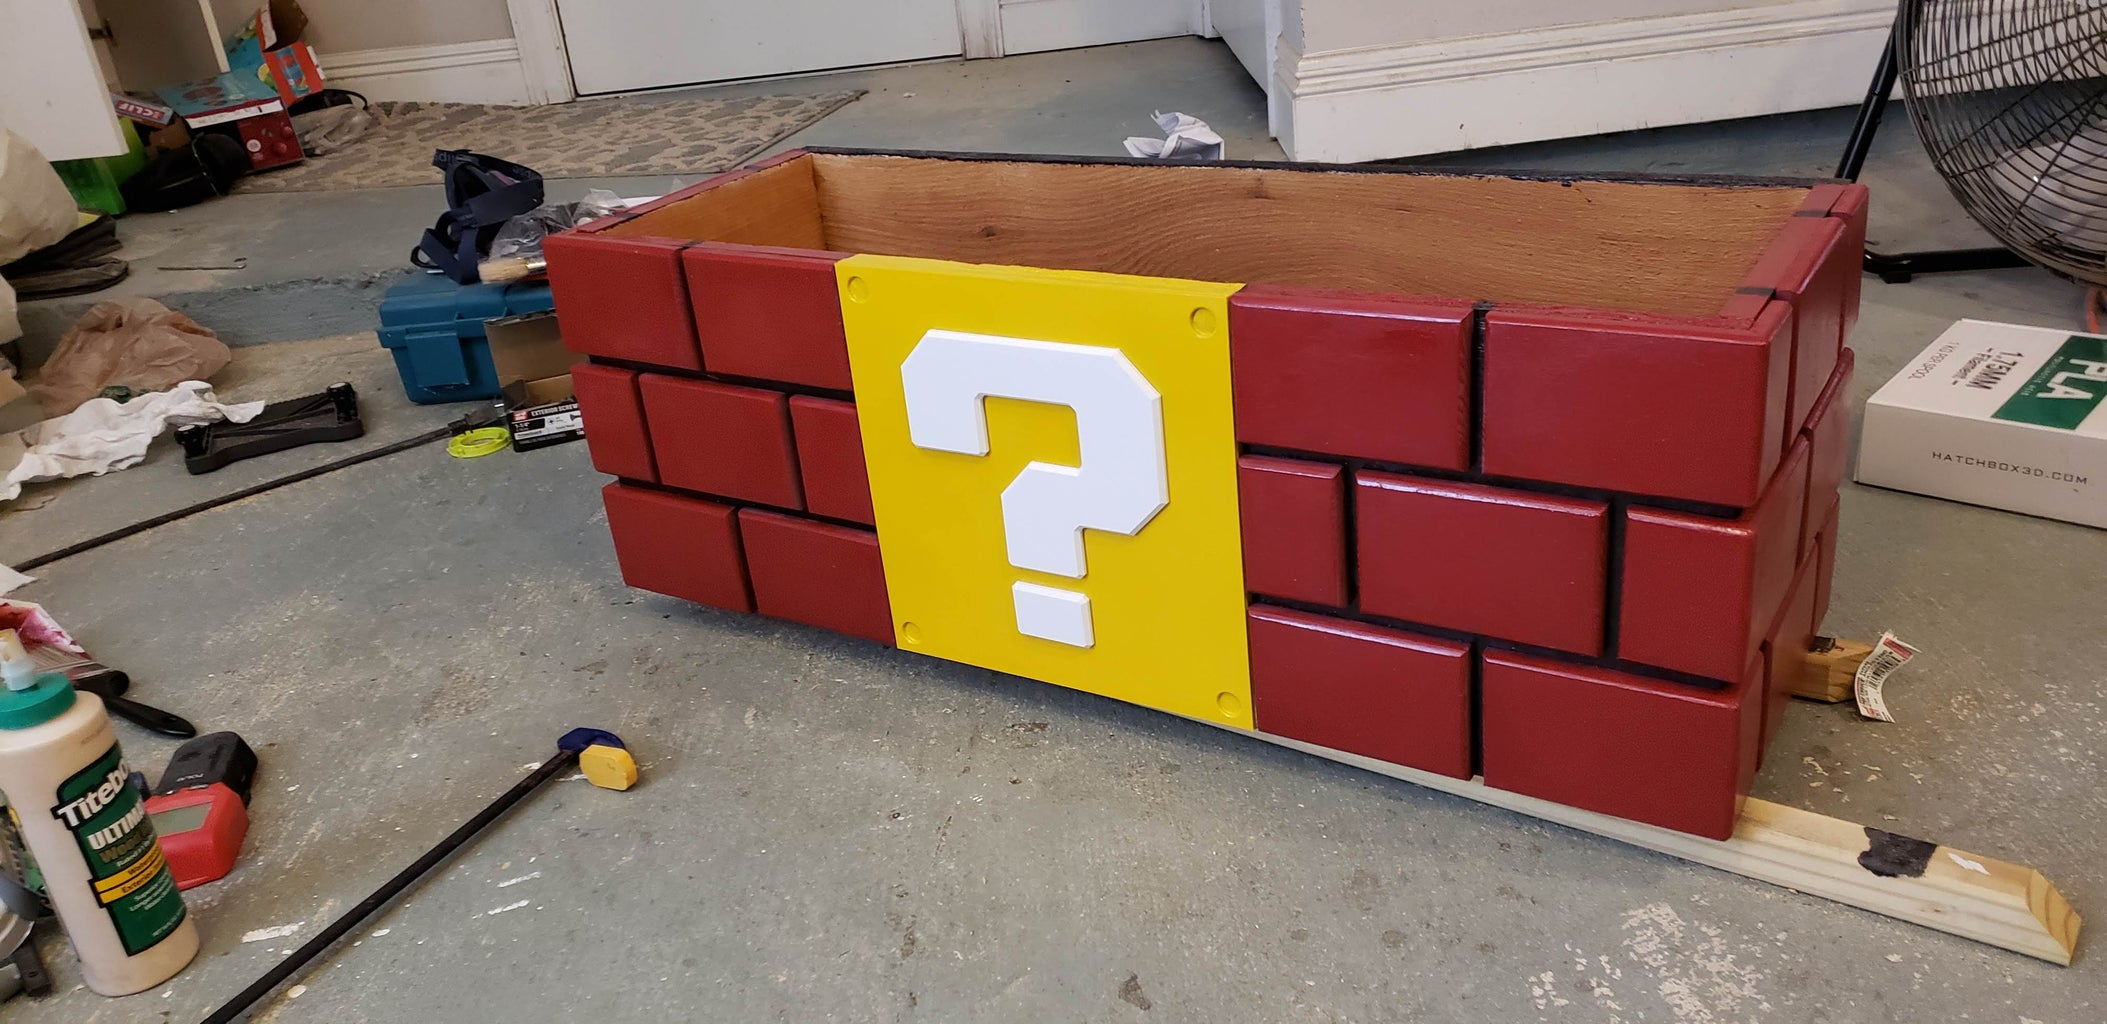 Attaching the Question Block